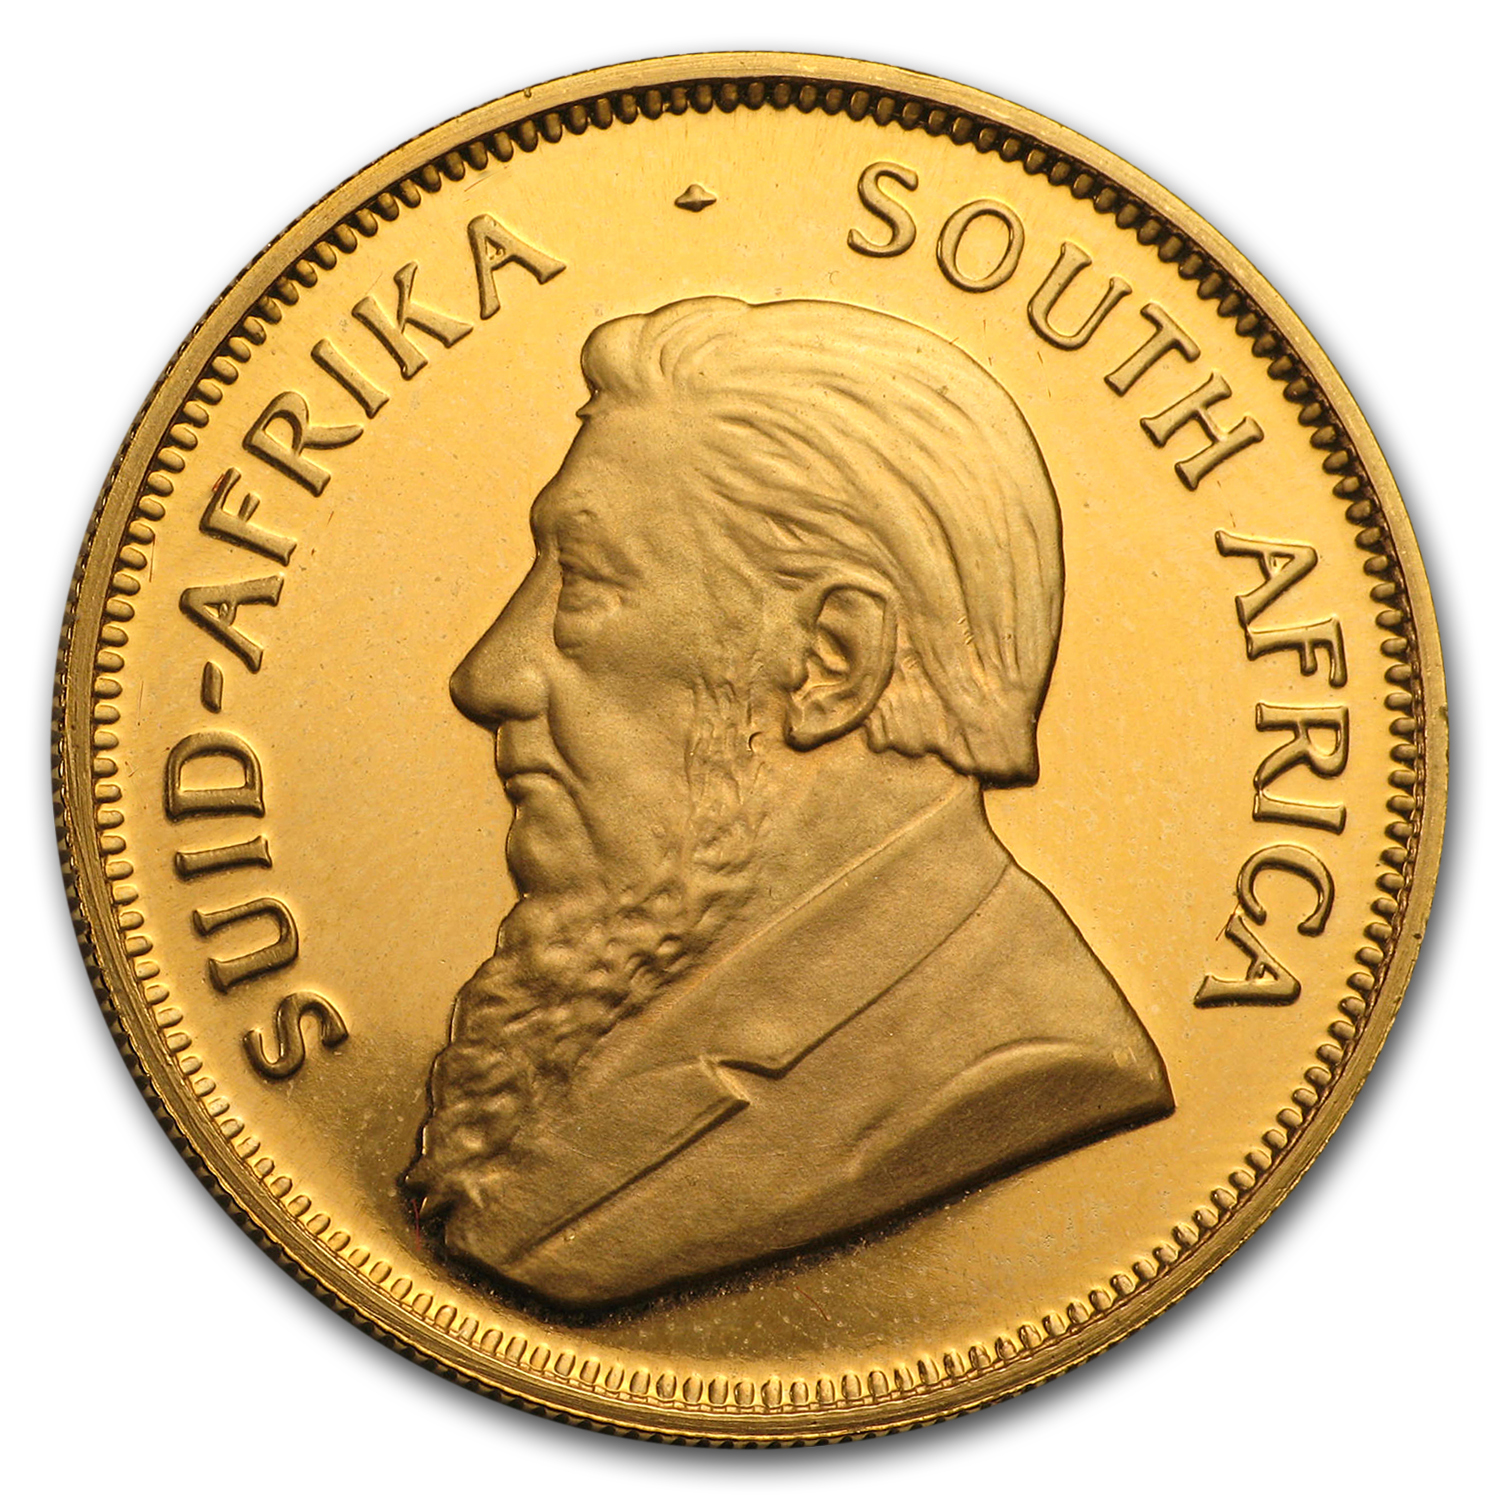 1981 1/2 oz Gold South African Krugerrand (Proof)